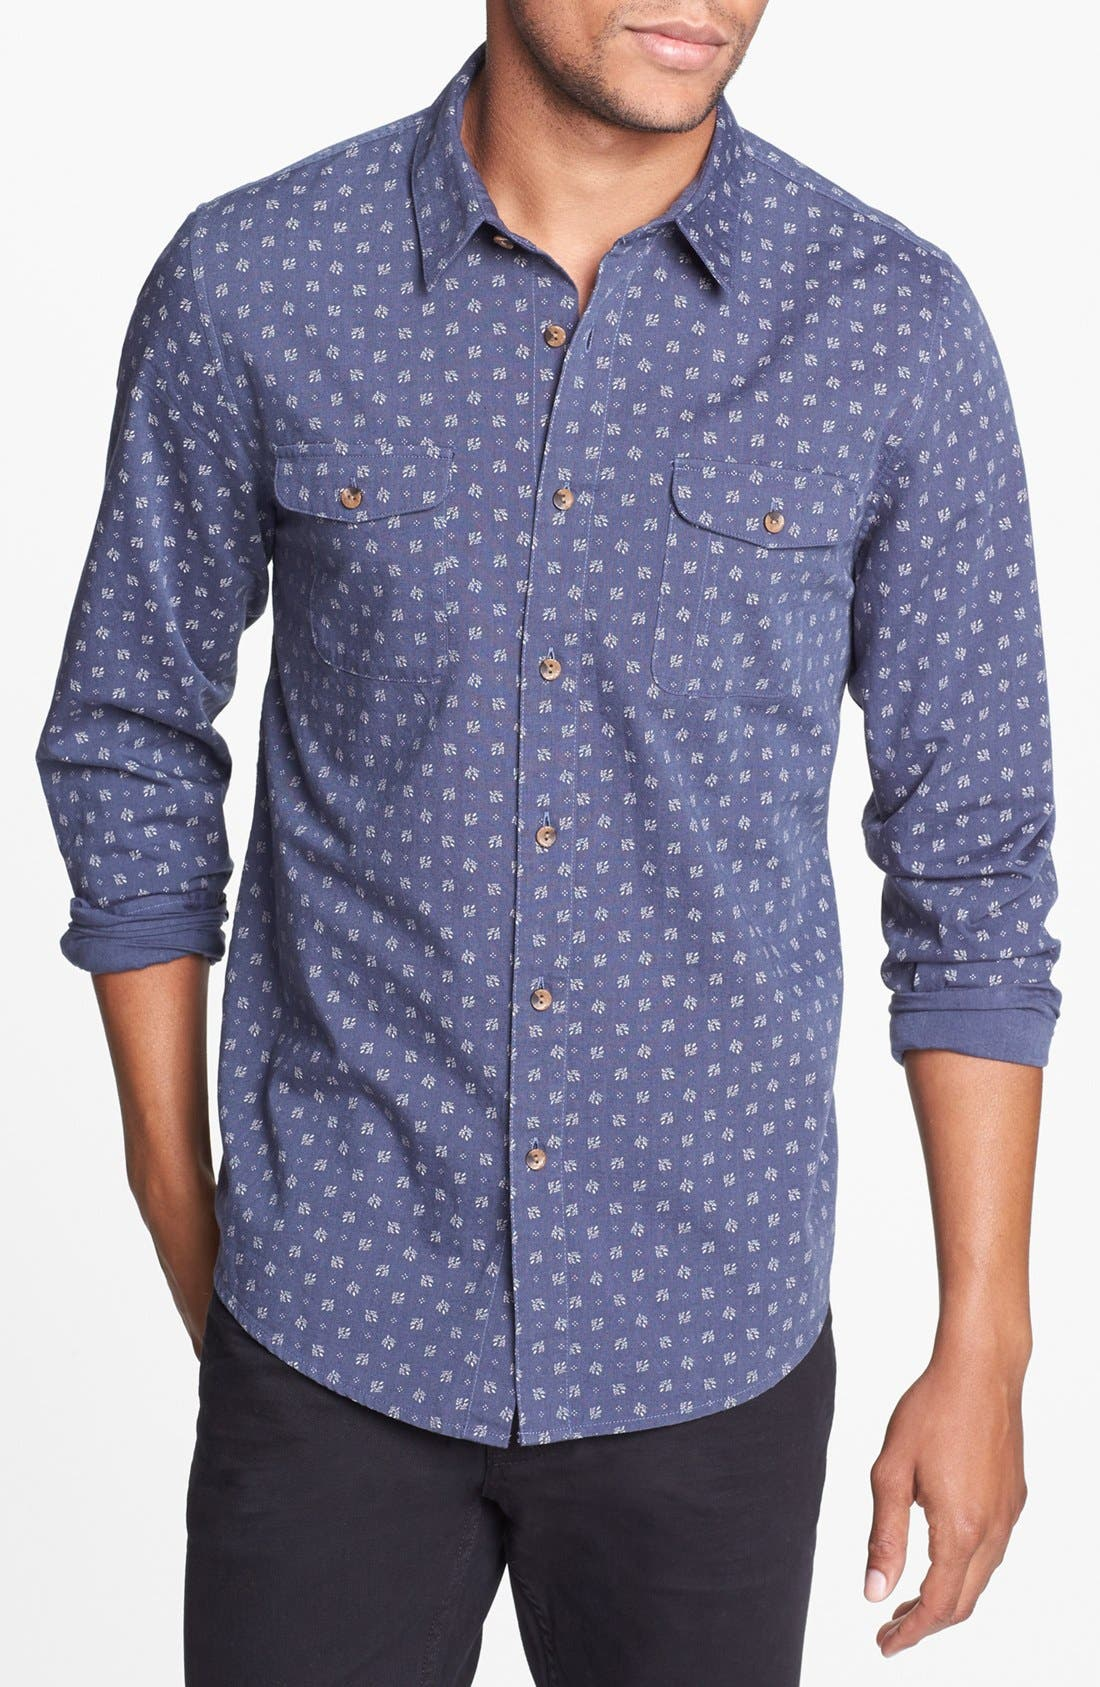 Alternate Image 1 Selected - Topman Patterned Chambray Cotton Shirt